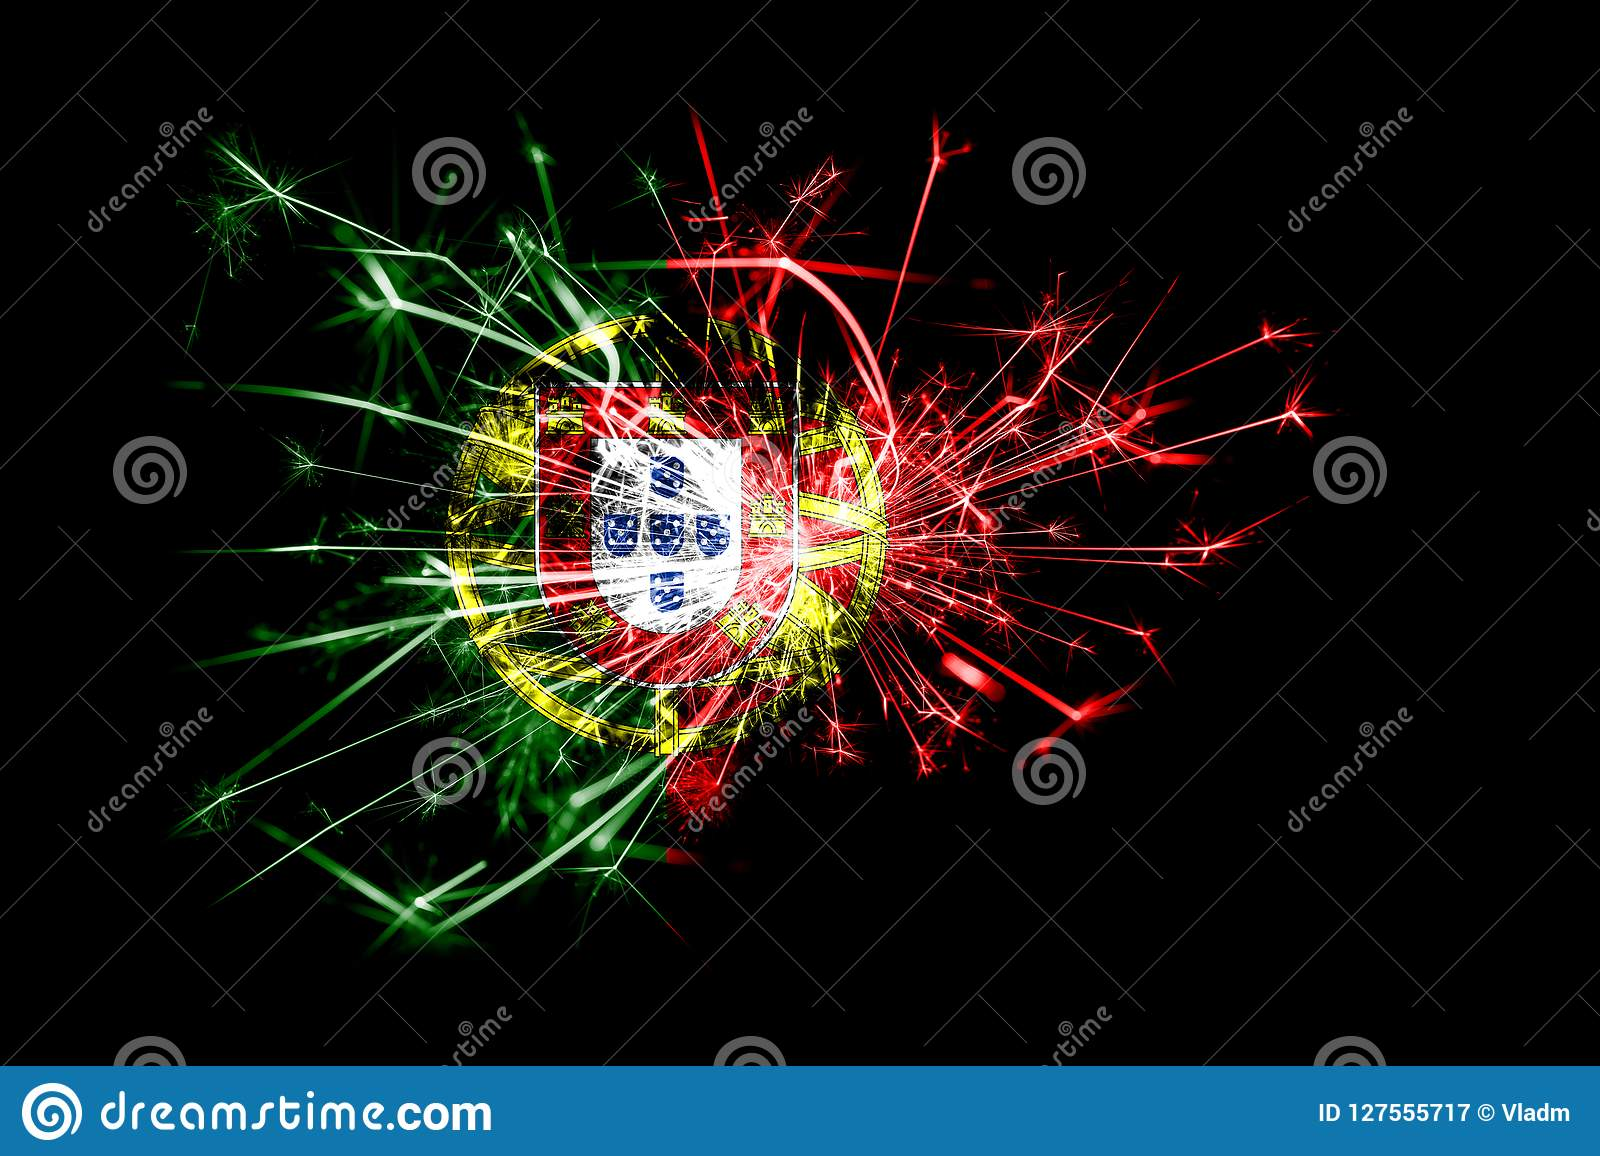 Christmas In Portugal 2019.Portugal Fireworks Sparkling Flag New Year 2019 And